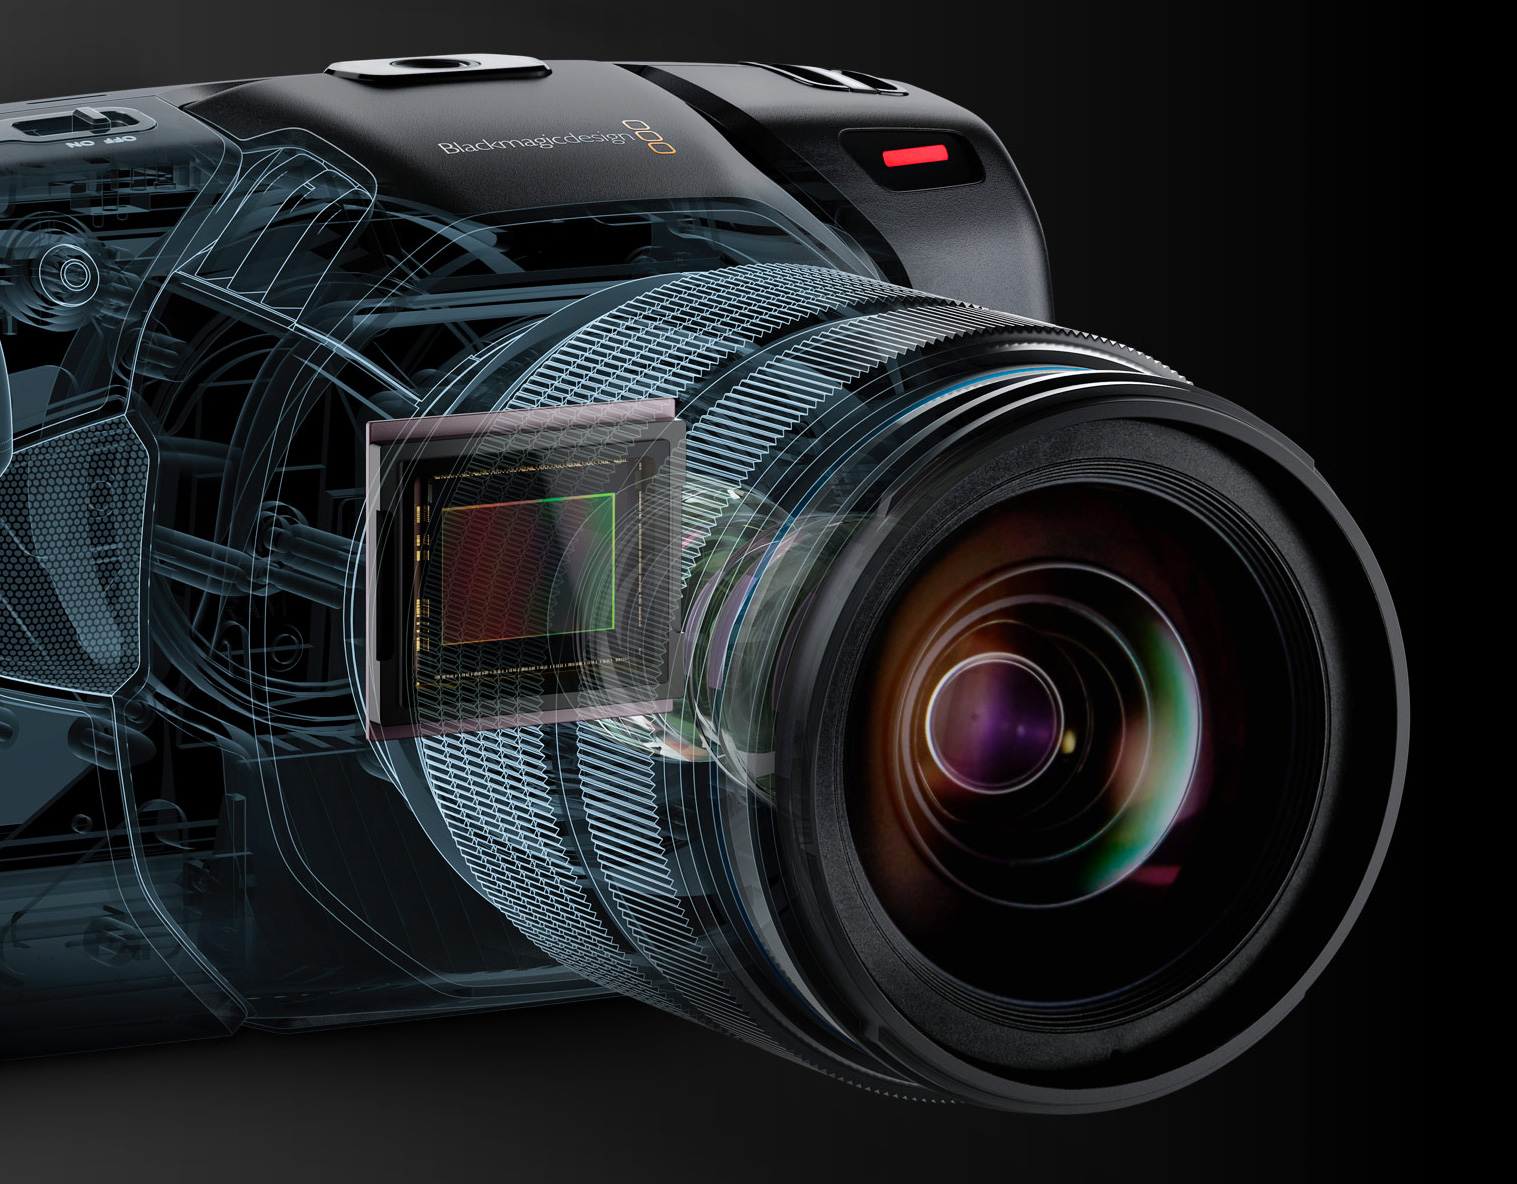 Blackmagic Pocket Cinema Camera 4K RAW and ProRes 422 footage